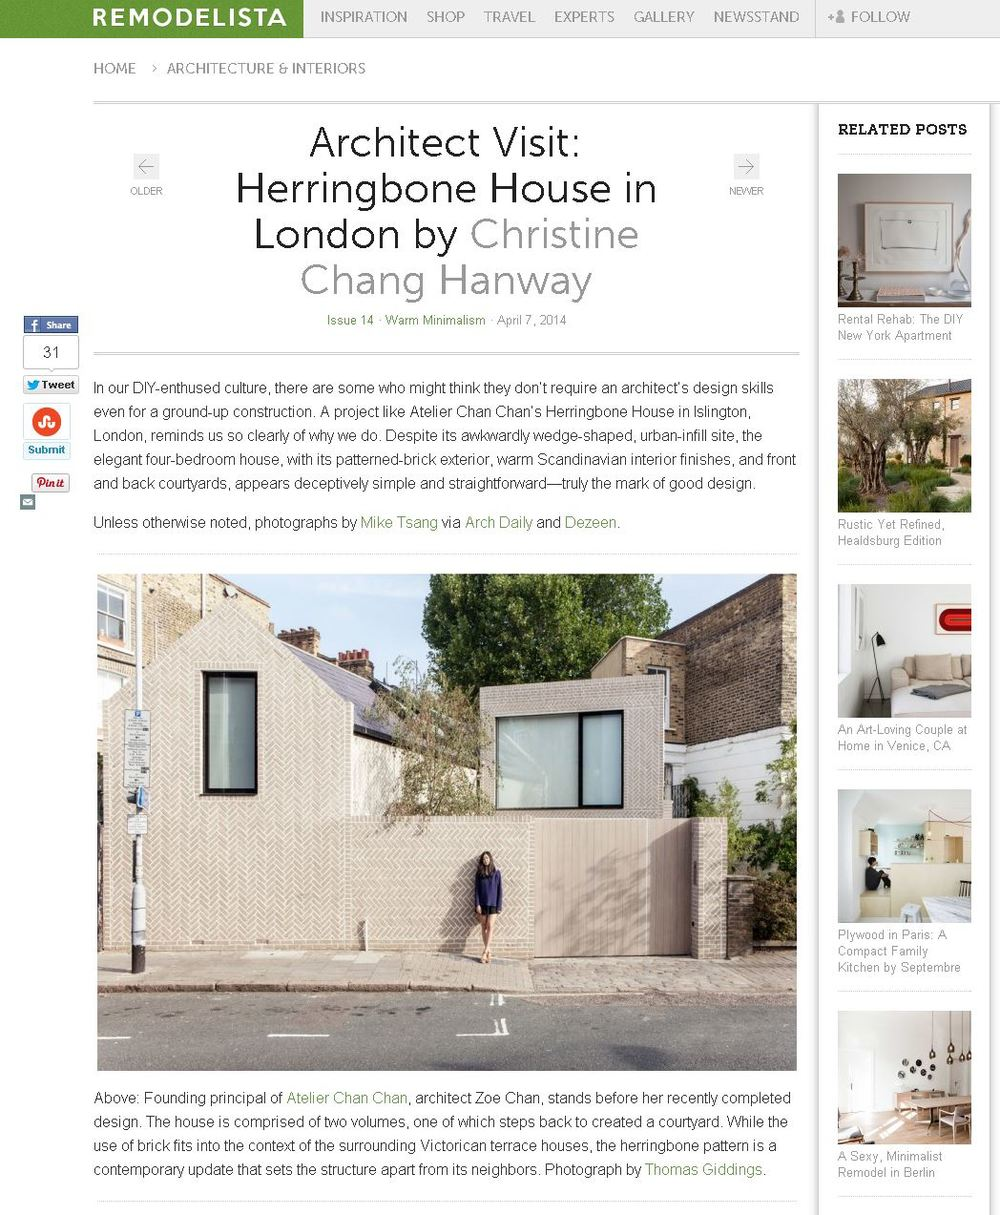 Remodelista Online Architect Visit: Herringbone House in London By Christina Chang Hanway